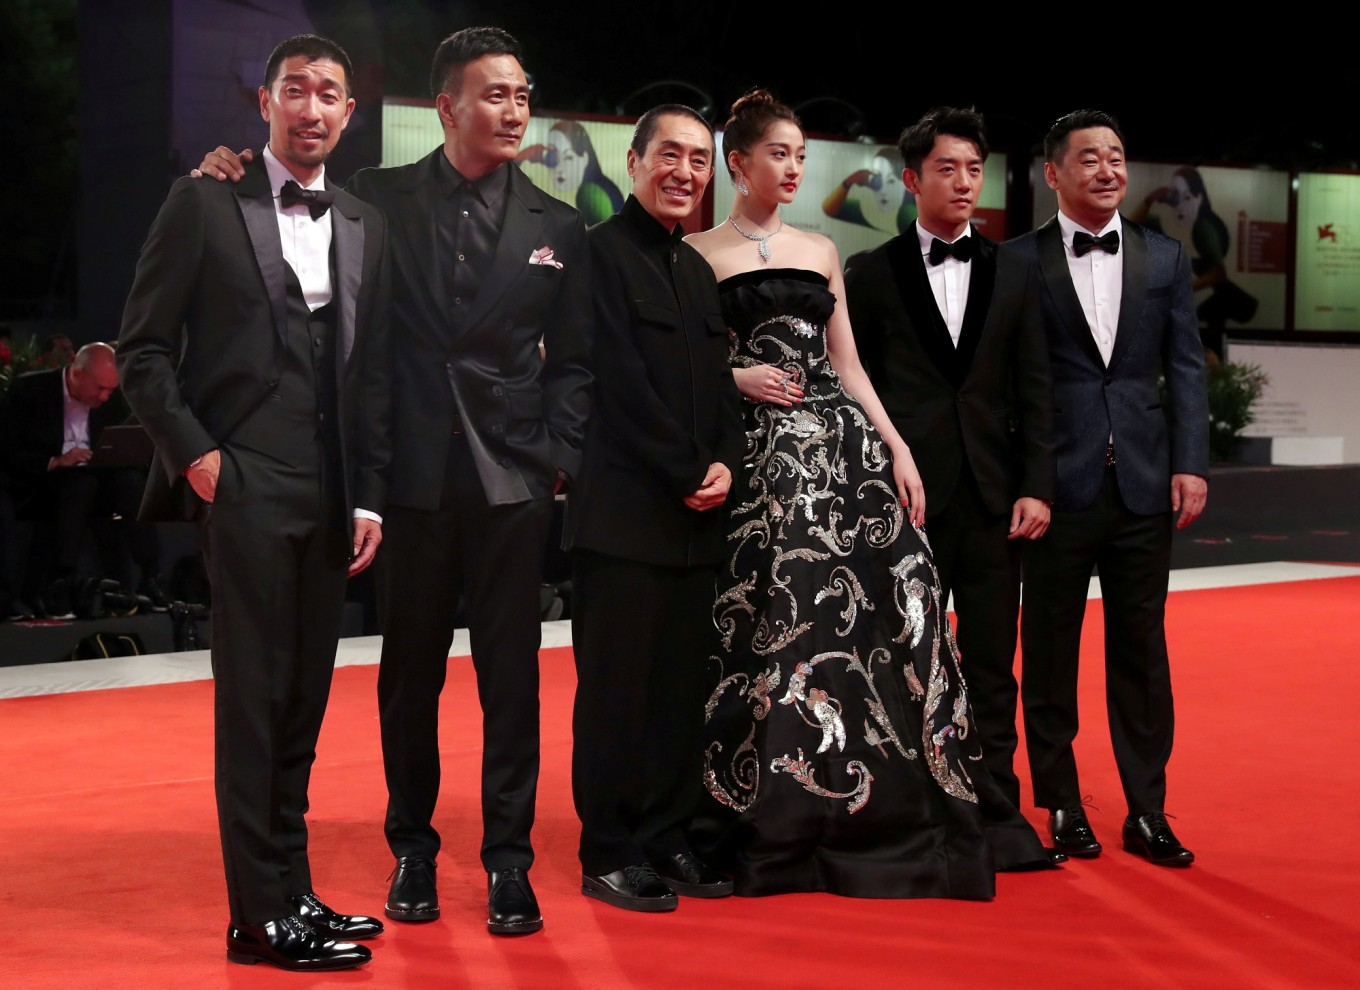 Zhang Yimou unleashes Shakespearean martial arts epic in Venice